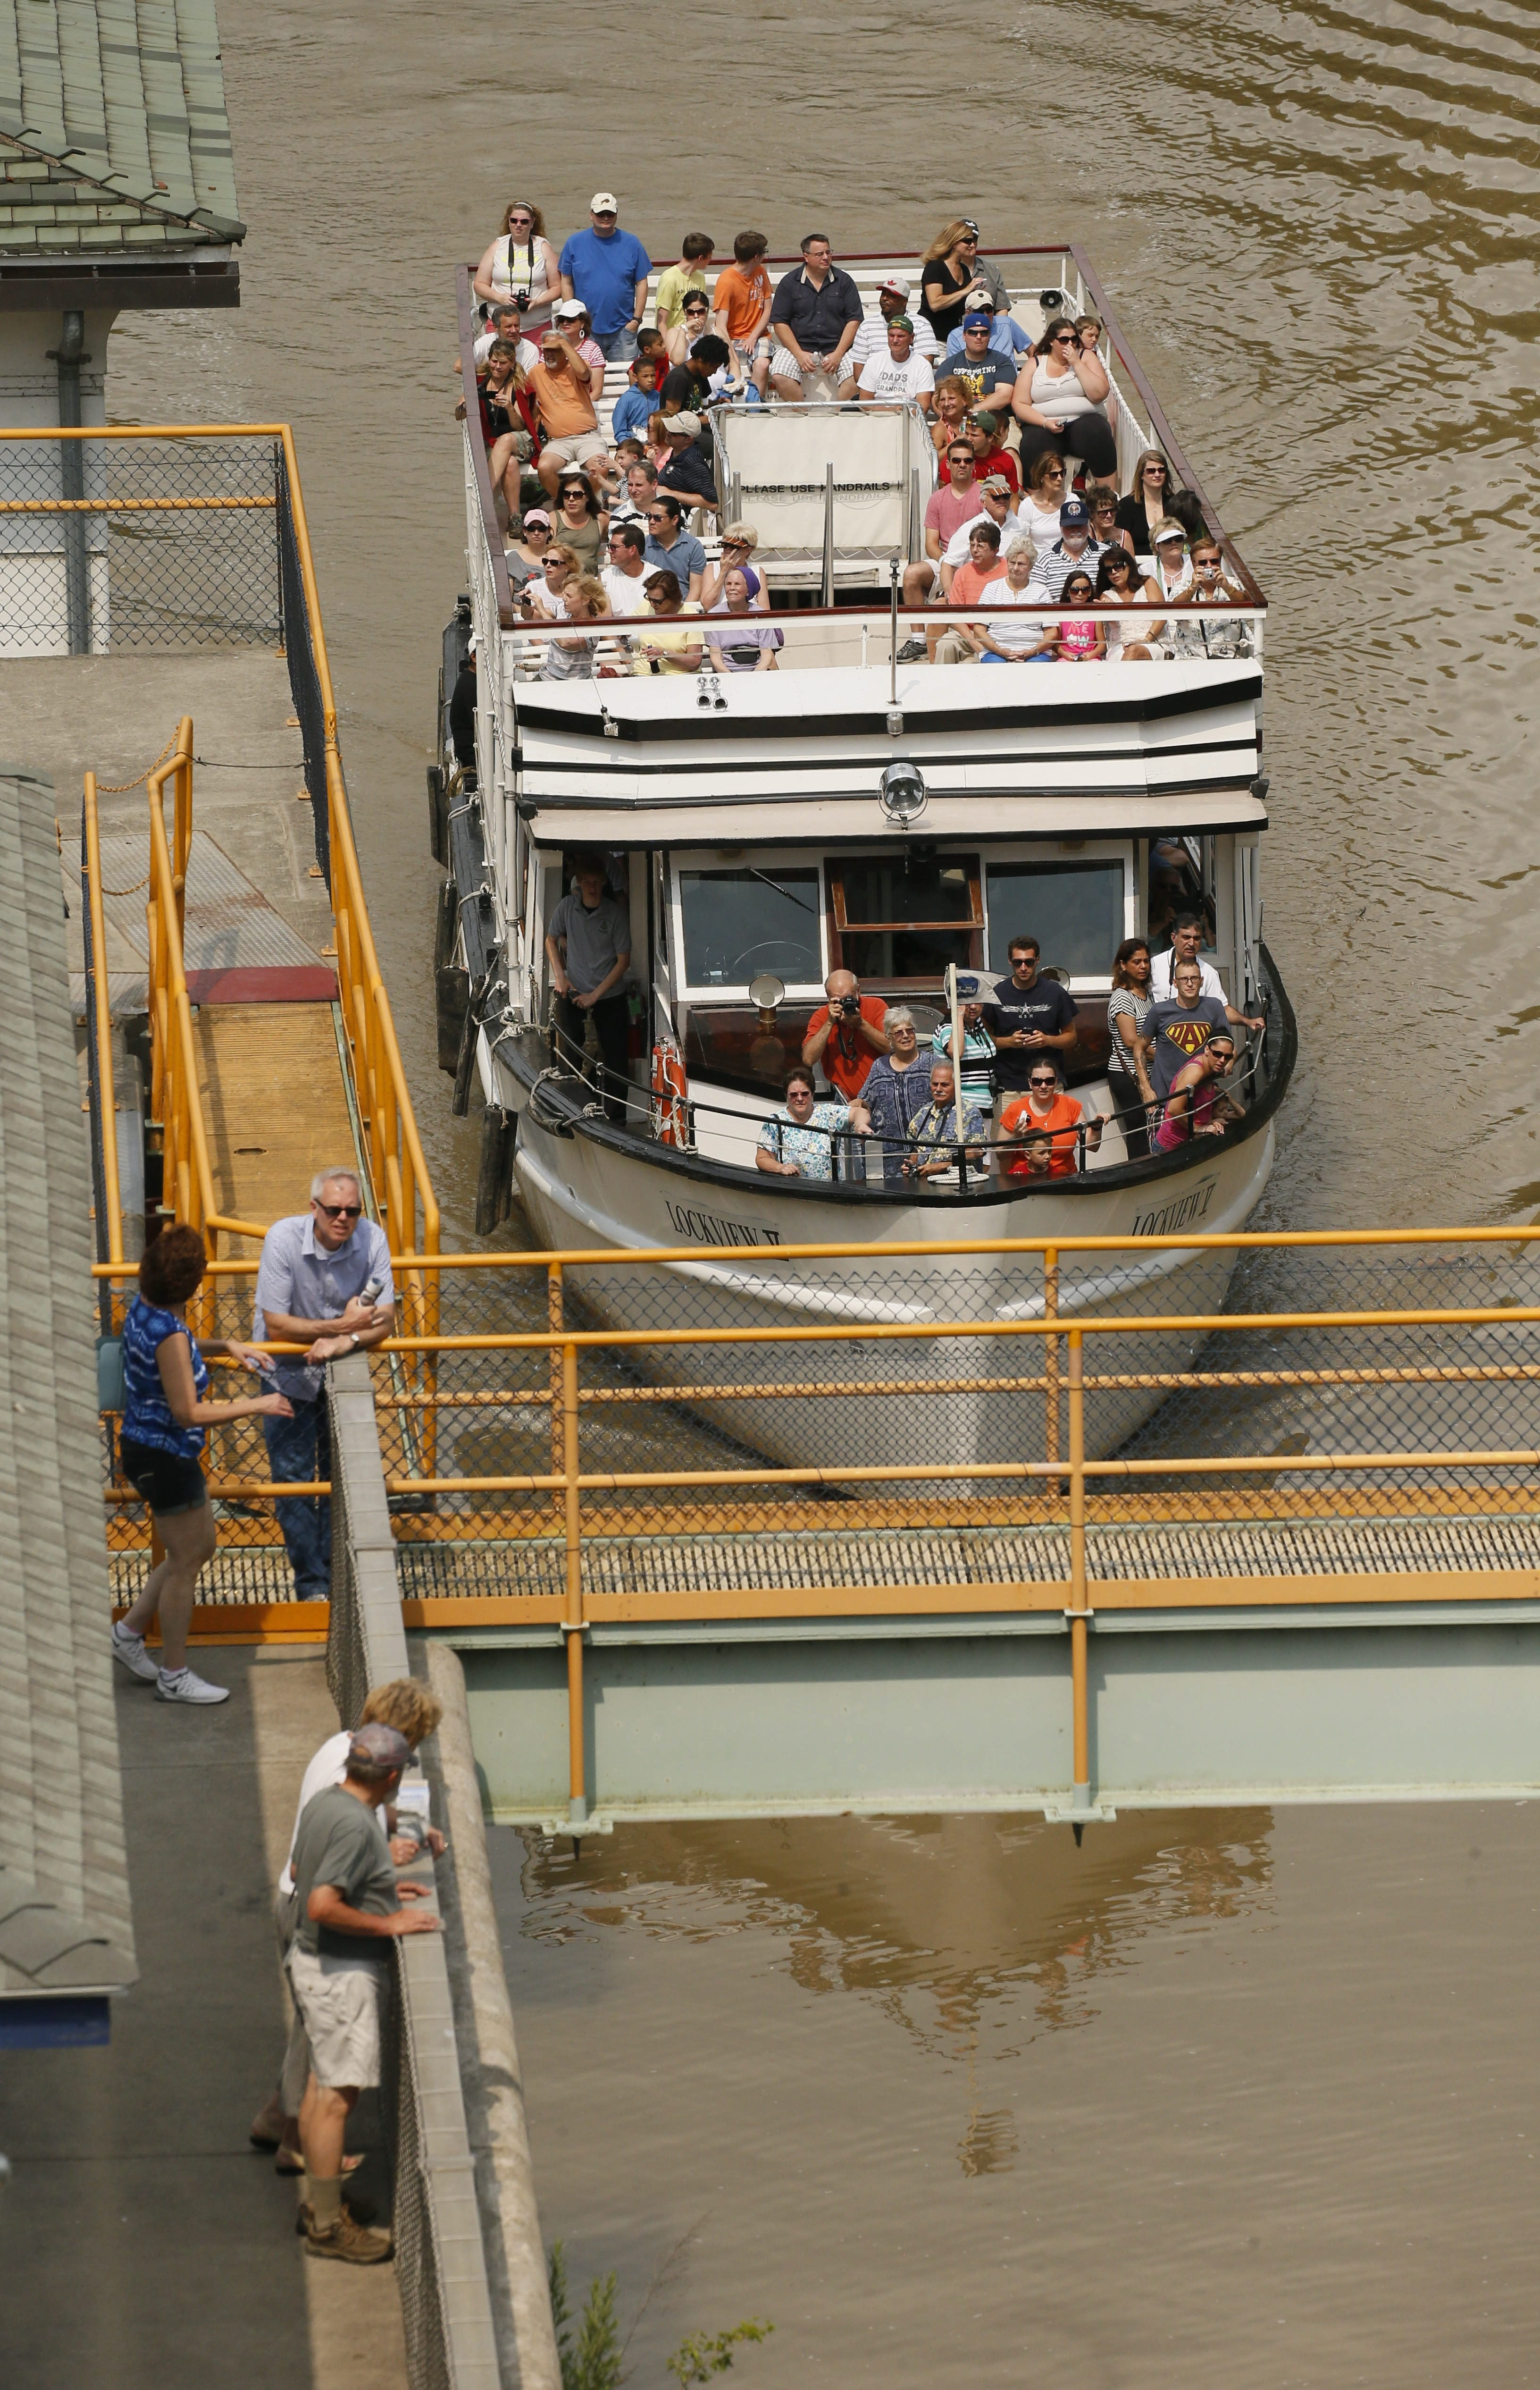 Erie Canal Cruises Lockview V enters a lock during last year's cruising season, when the company's three boats carried about 40,000 people through the Erie Canal locks. This year's season begins on Saturday.